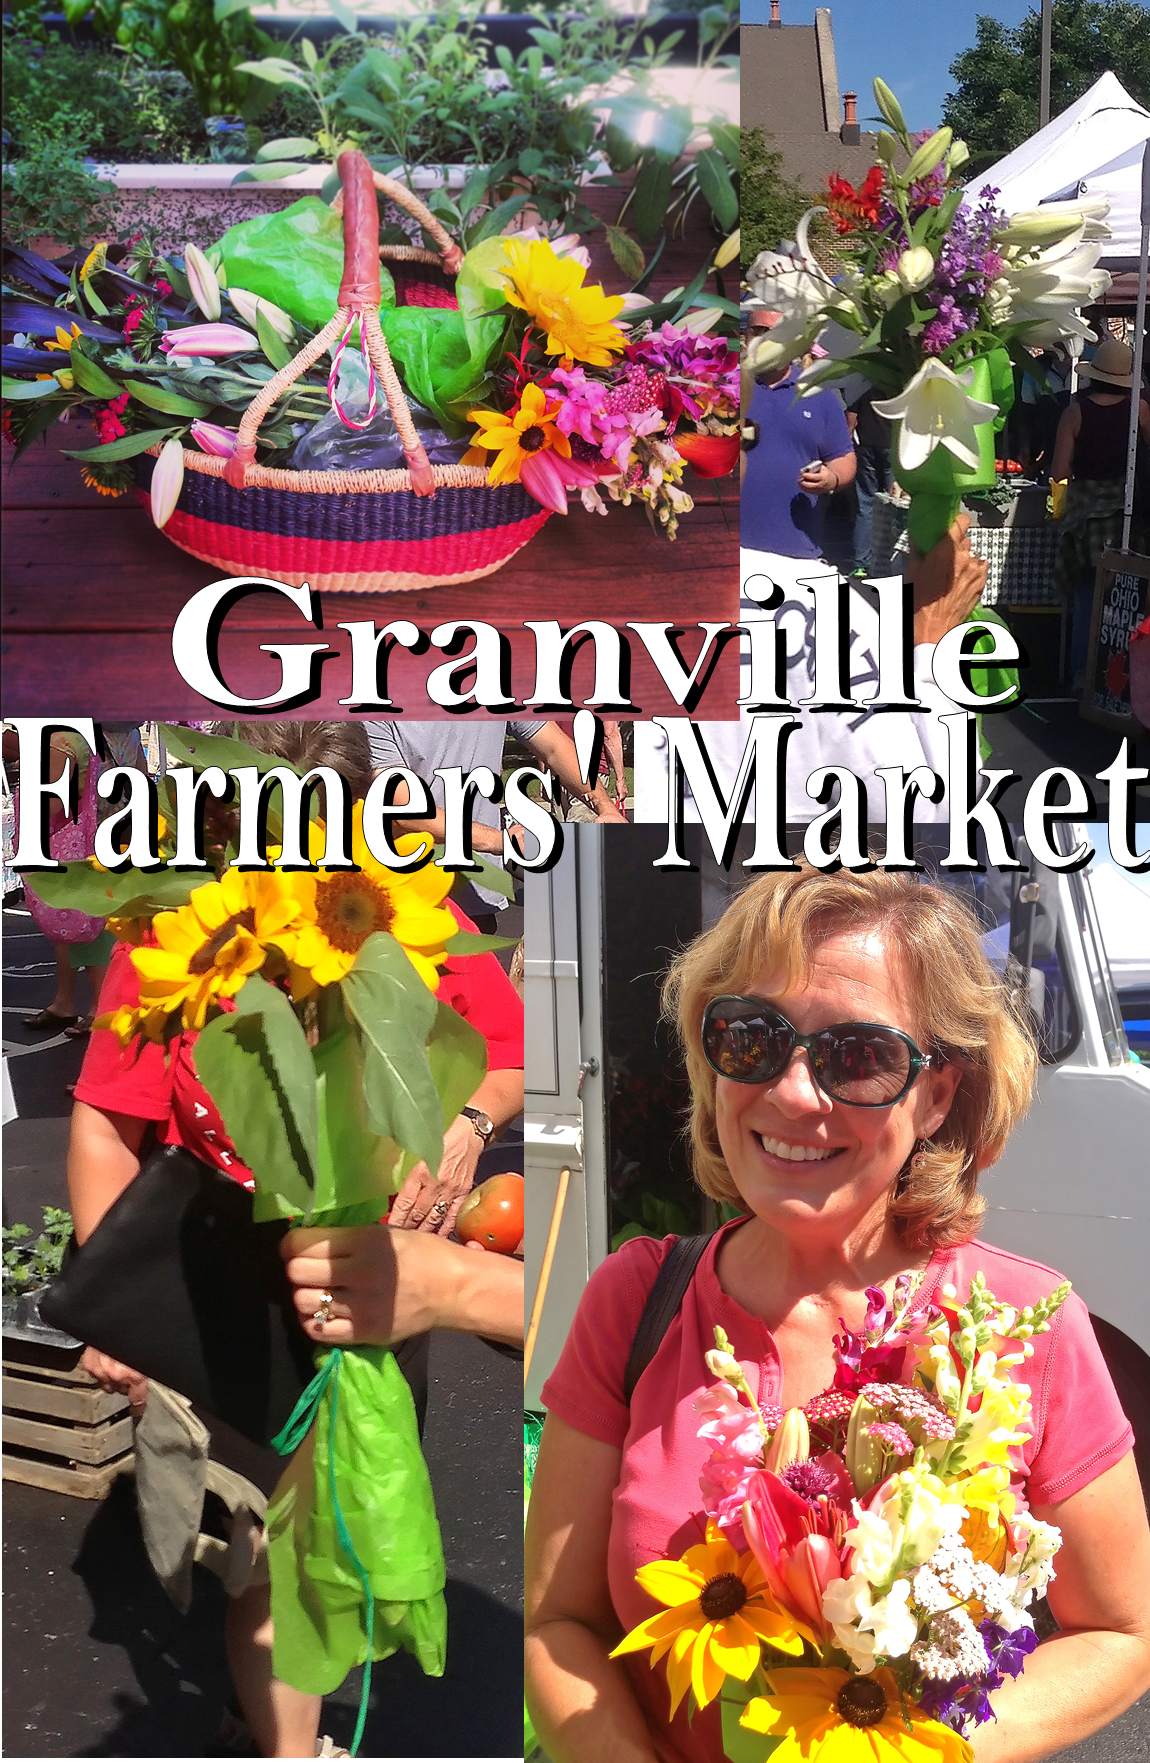 Managing Director Linda Twining visited the Granville